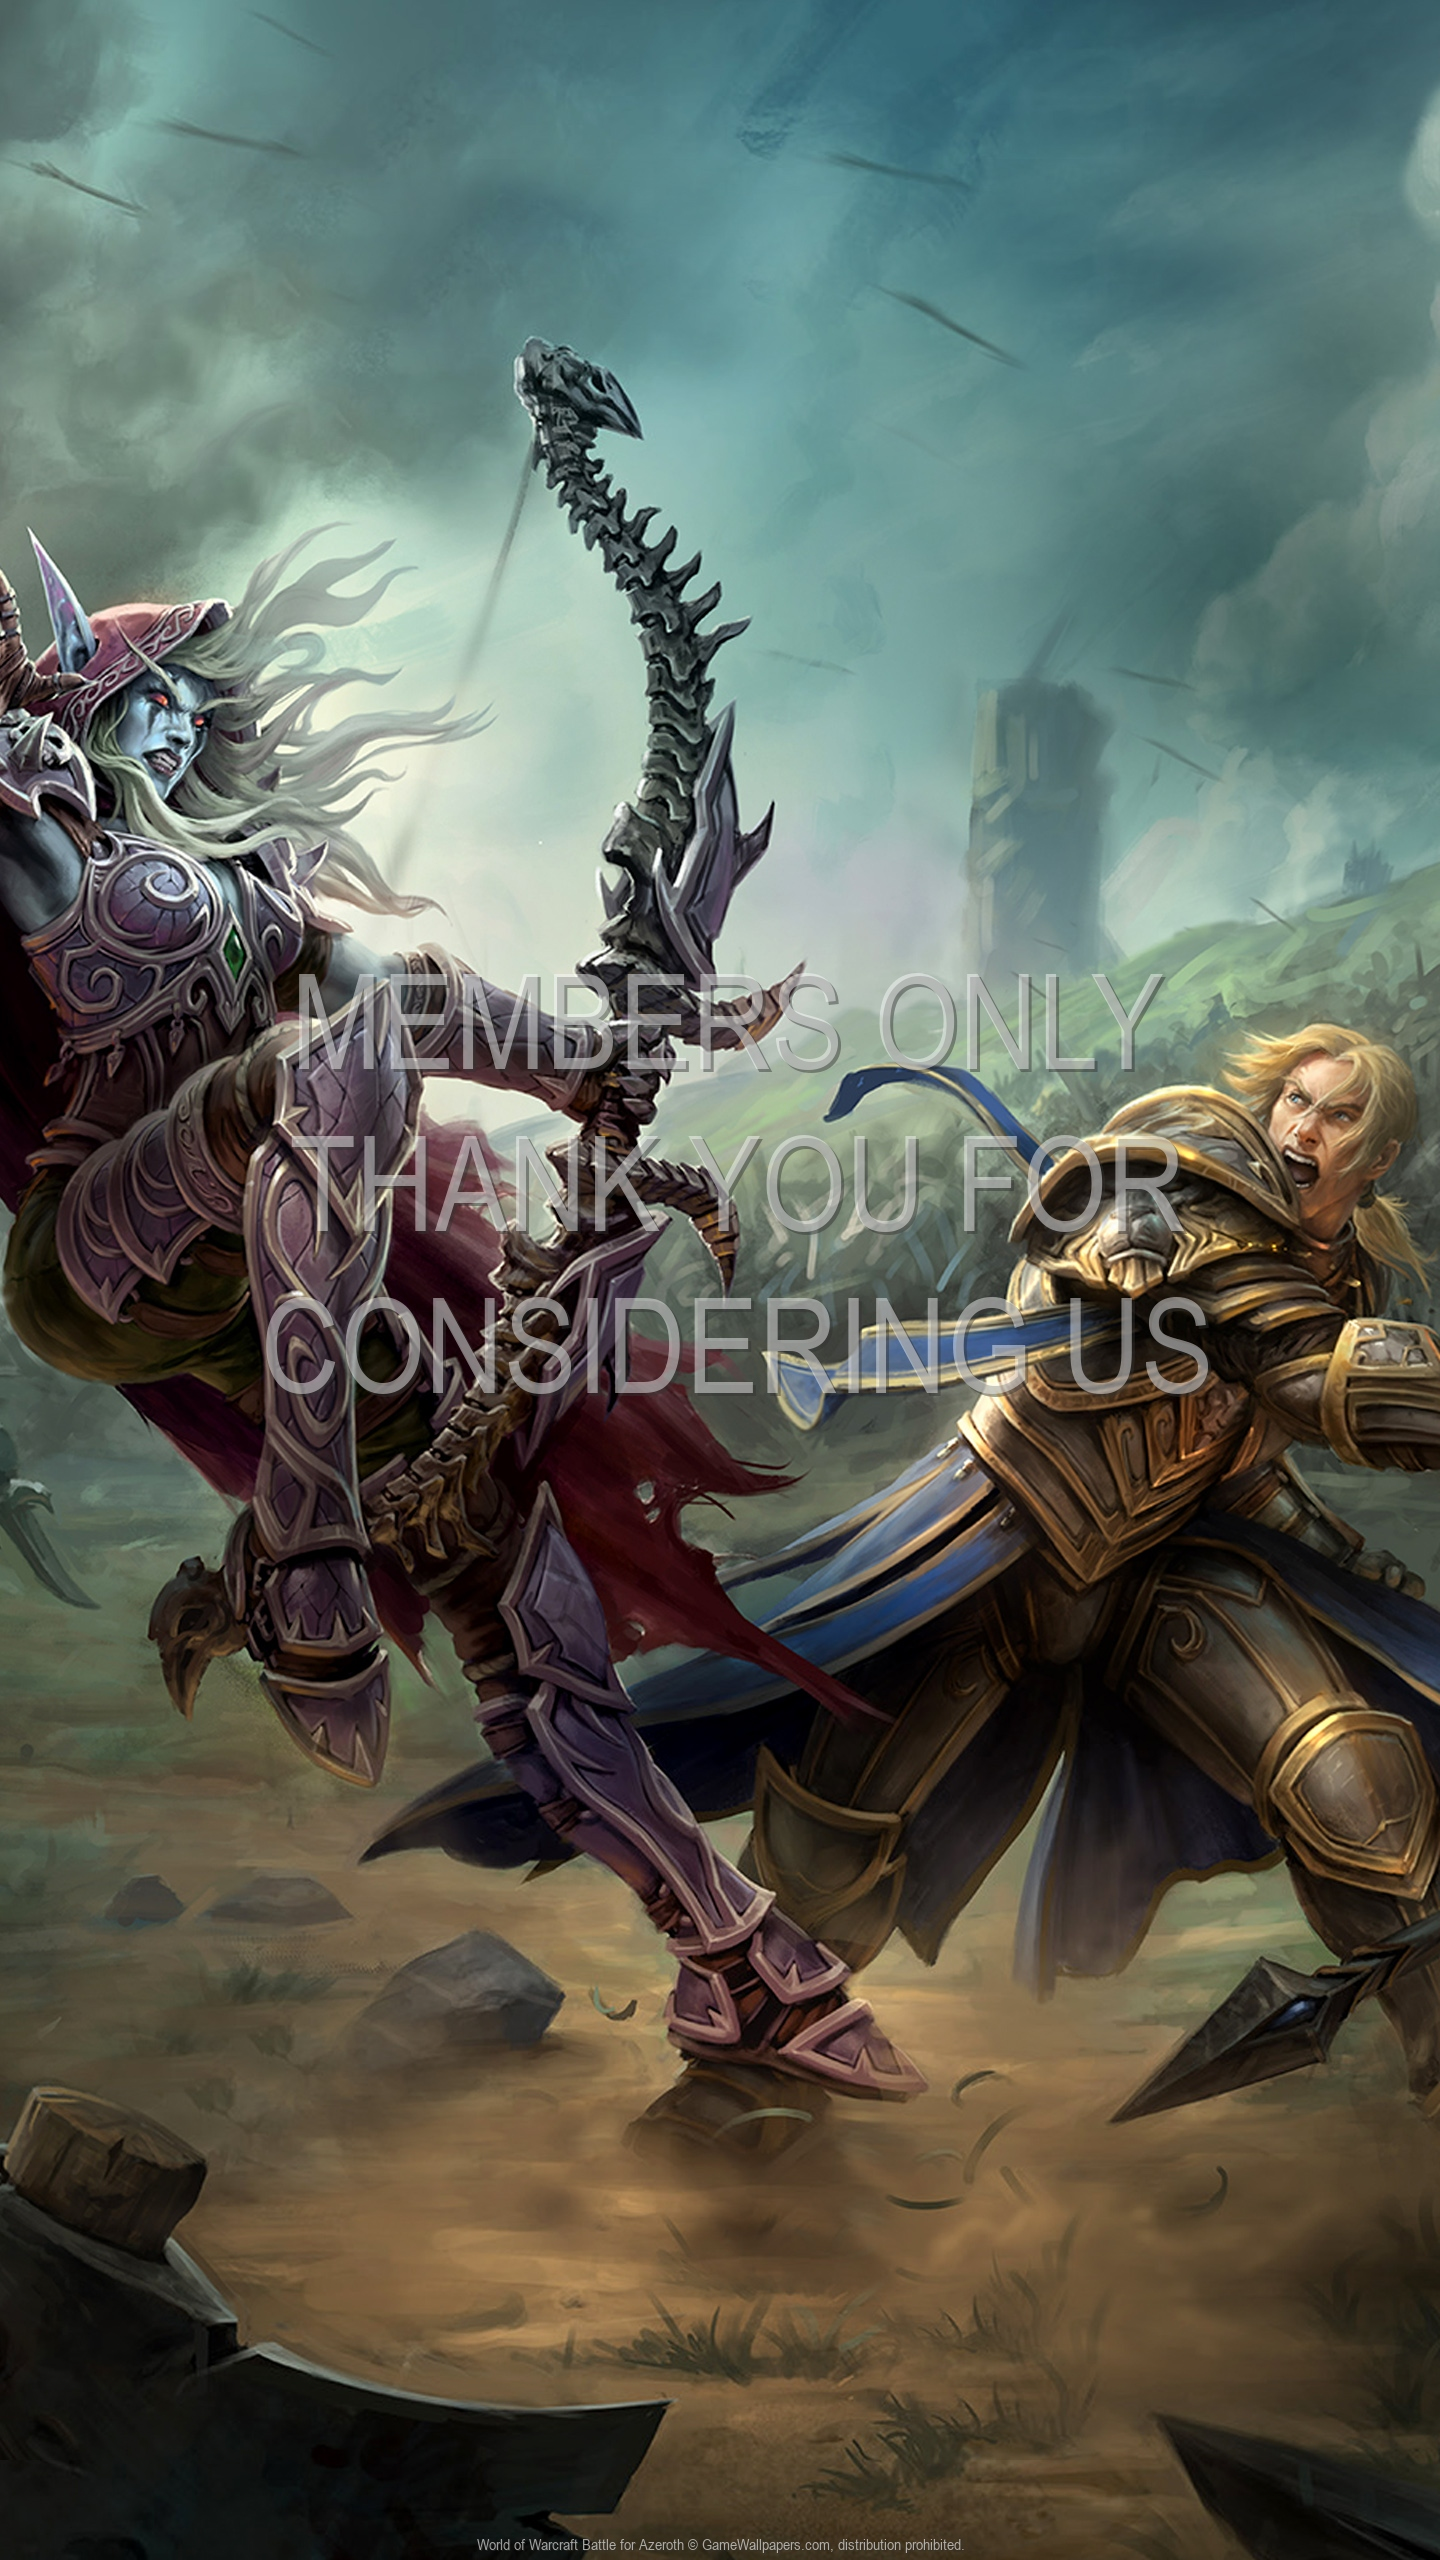 World of Warcraft: Battle for Azeroth 1920x1080 Mobile wallpaper or background 04